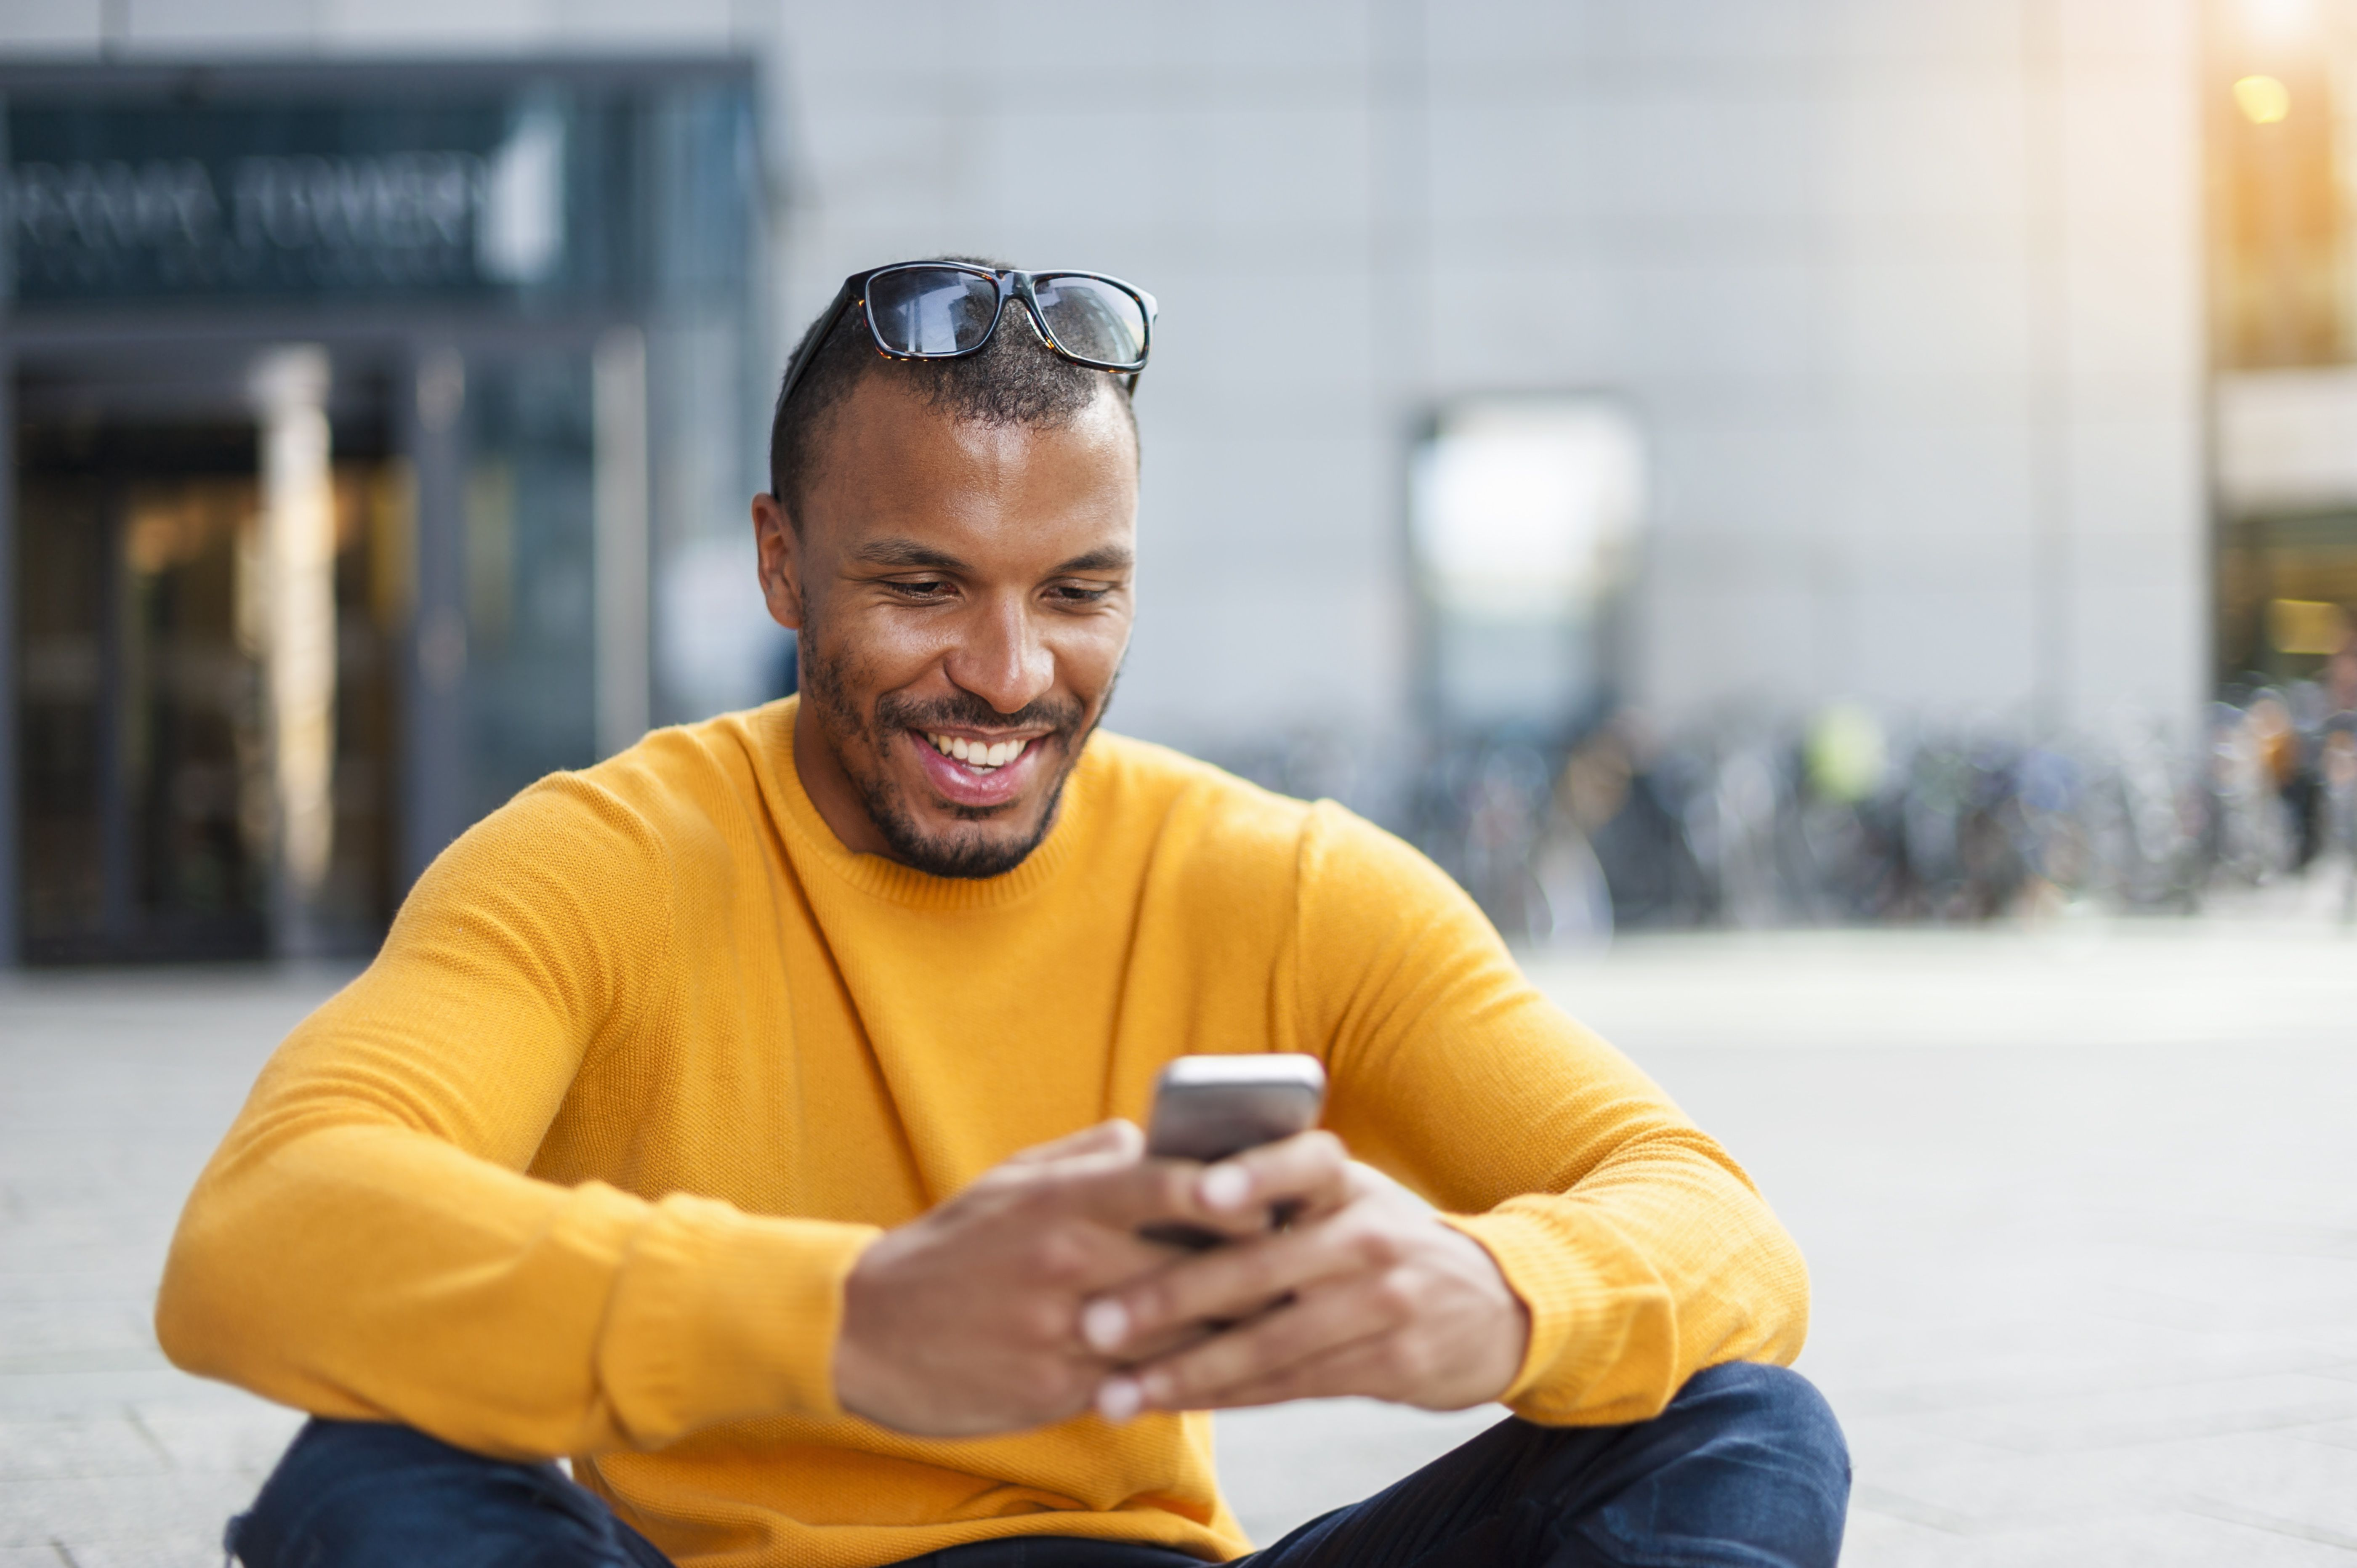 man wearing yellow pullover looking at cell phone